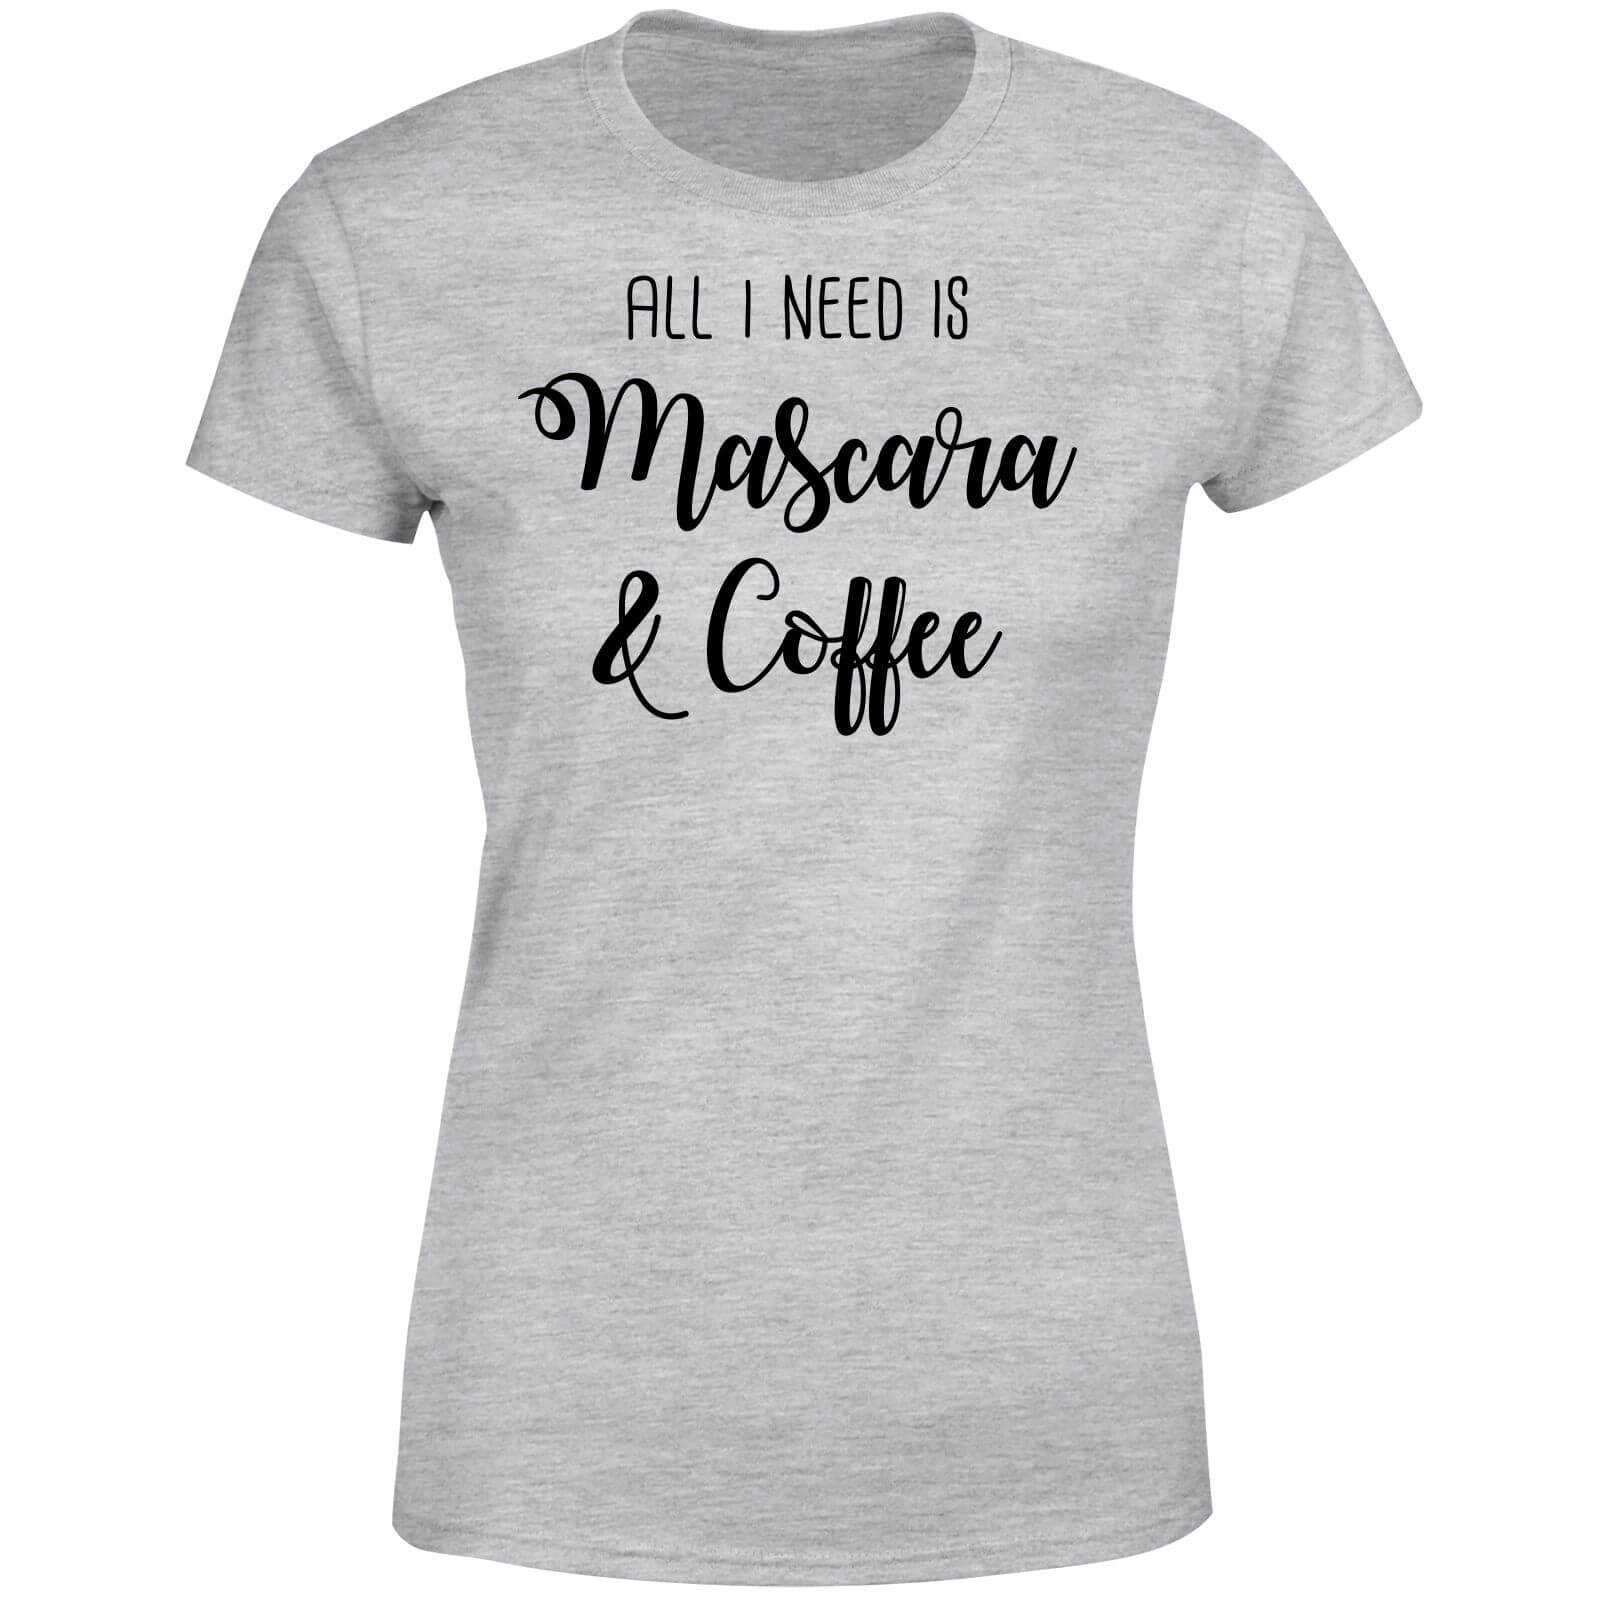 All I Need Is Mascara And Coffee Women